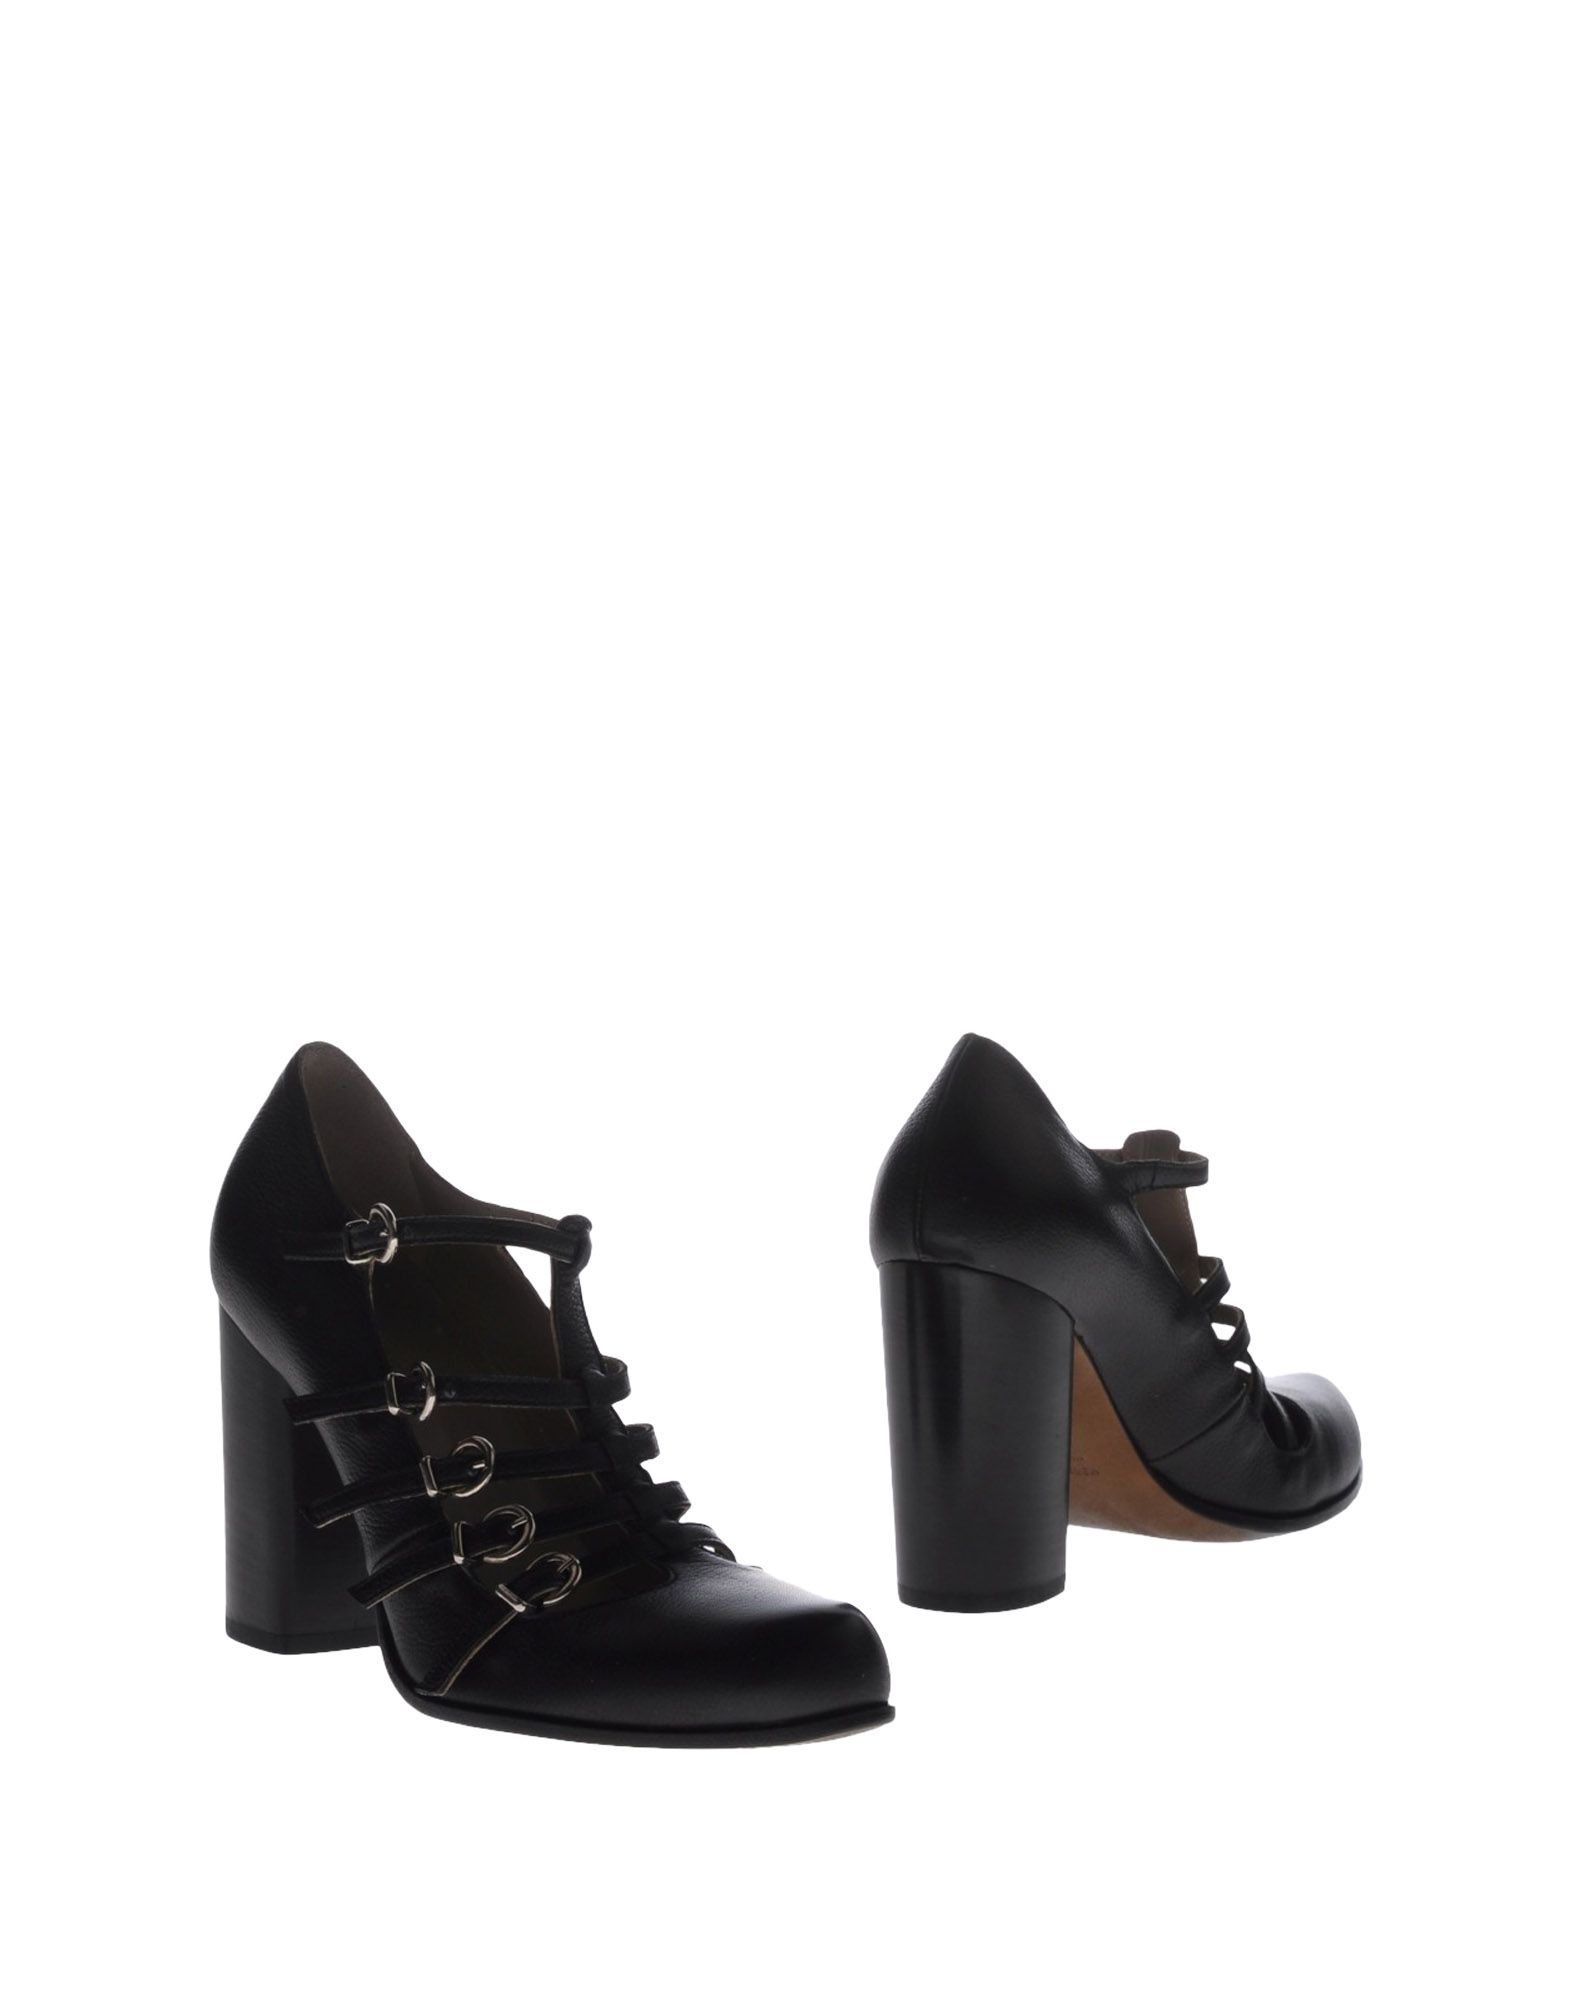 Bottine Lena Milos Femme - Bottines Lena Milos sur